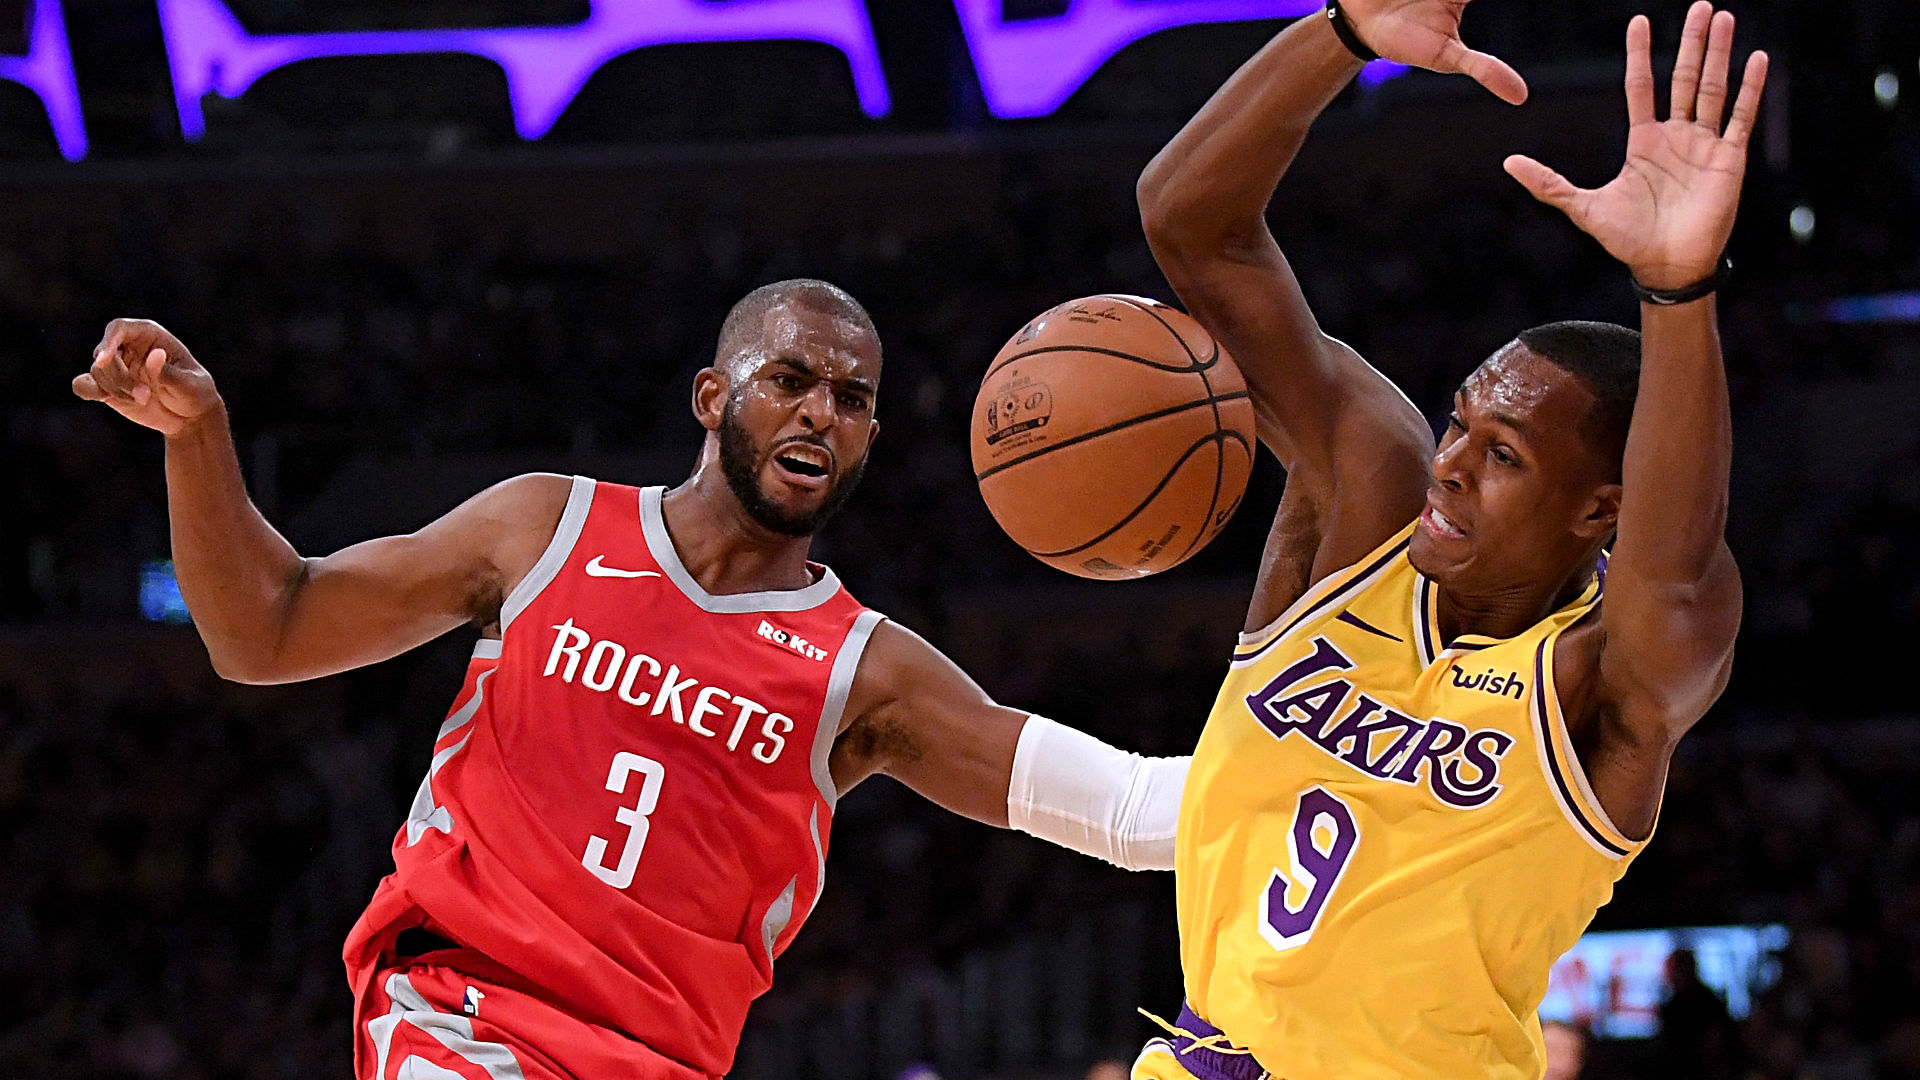 Houston Rockets 124-115 Los Angeles Lakers